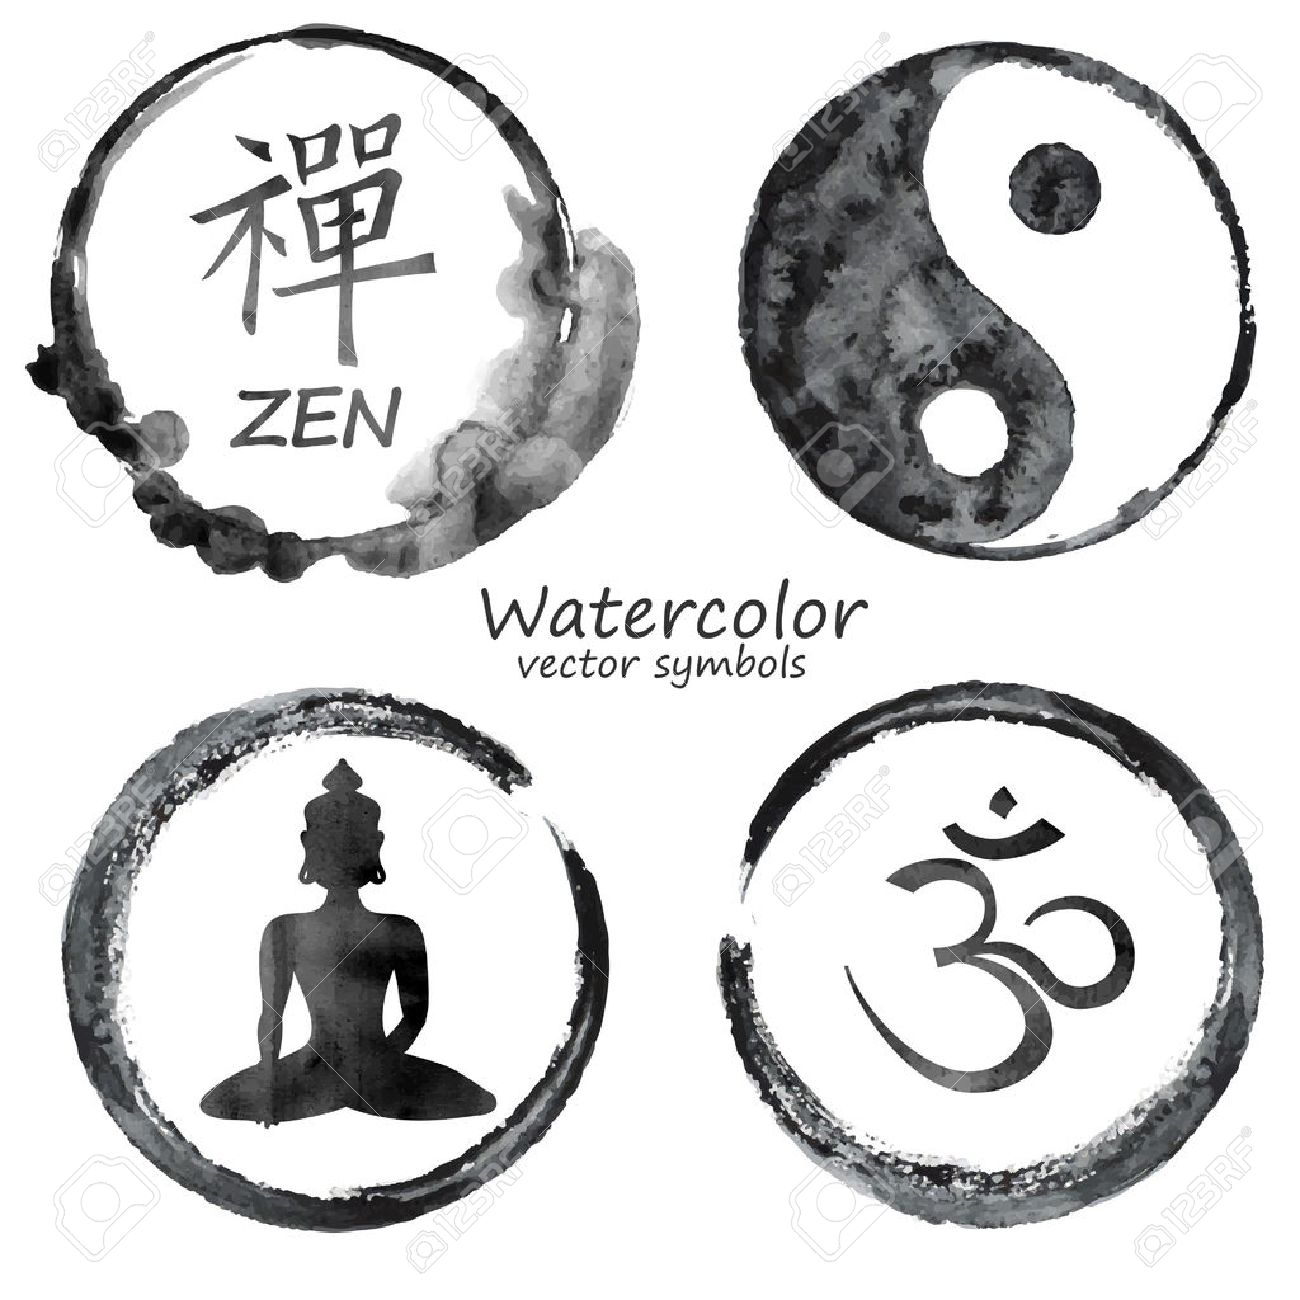 36299 Buddhism Cliparts Stock Vector And Royalty Free Buddhism